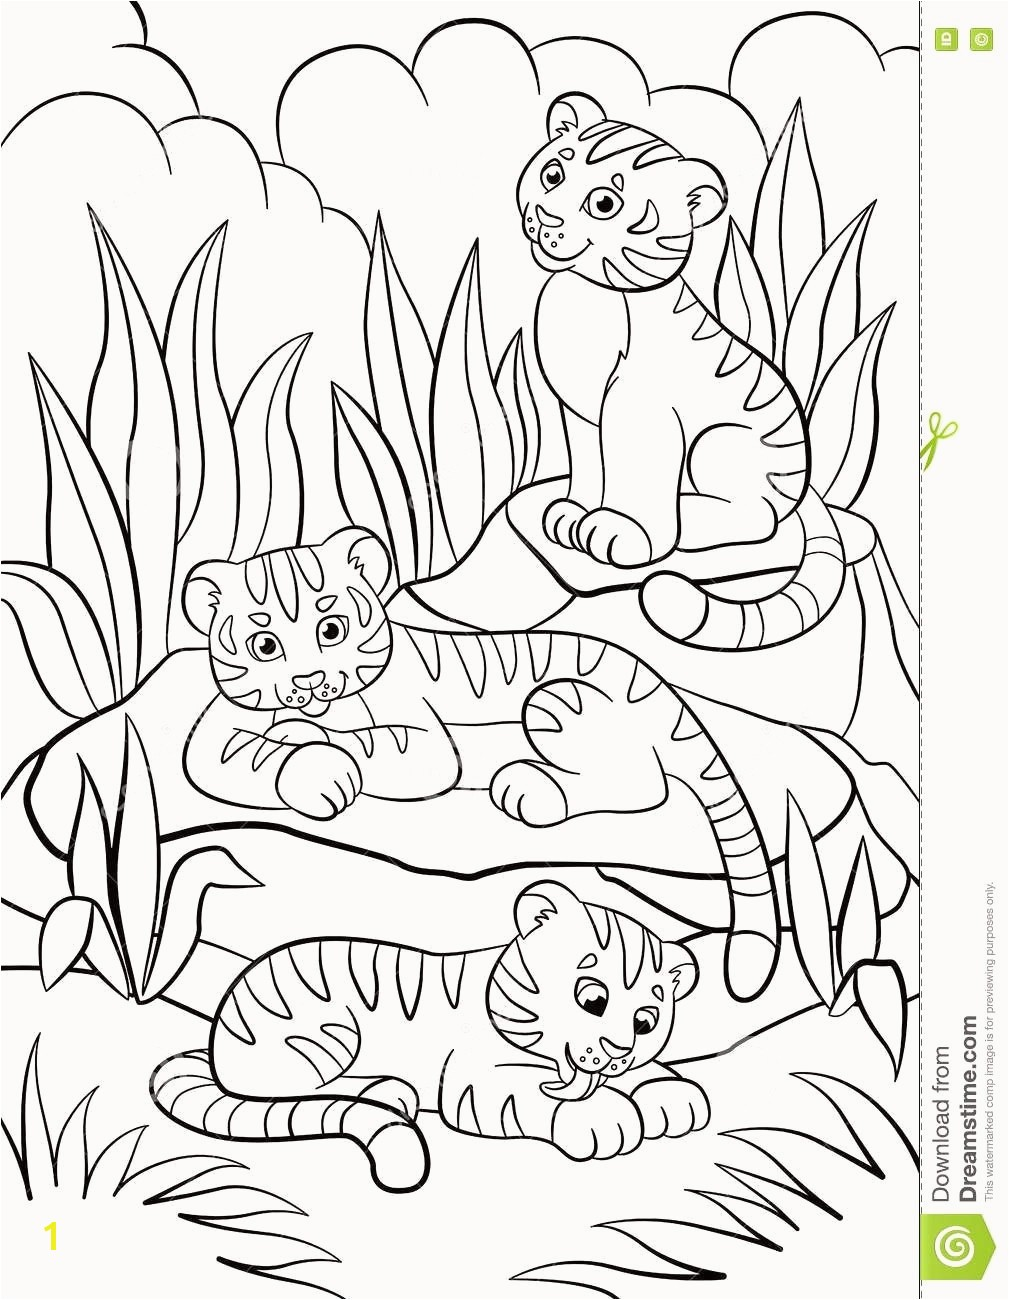 Animal Coloring Pages New Cool Coloring Page Unique Witch Coloring Pages New Crayola Pages 0d Collection